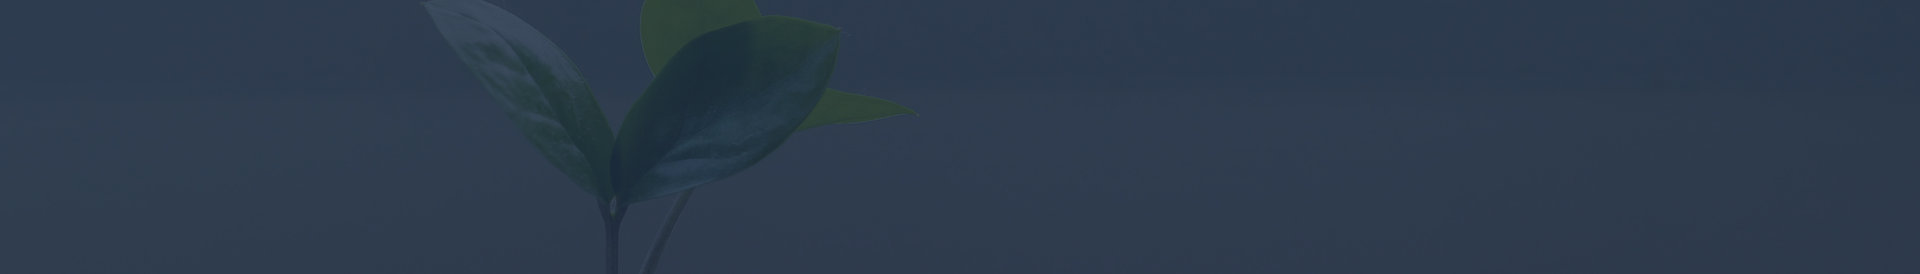 web asset_monthly donation banner_navy.j